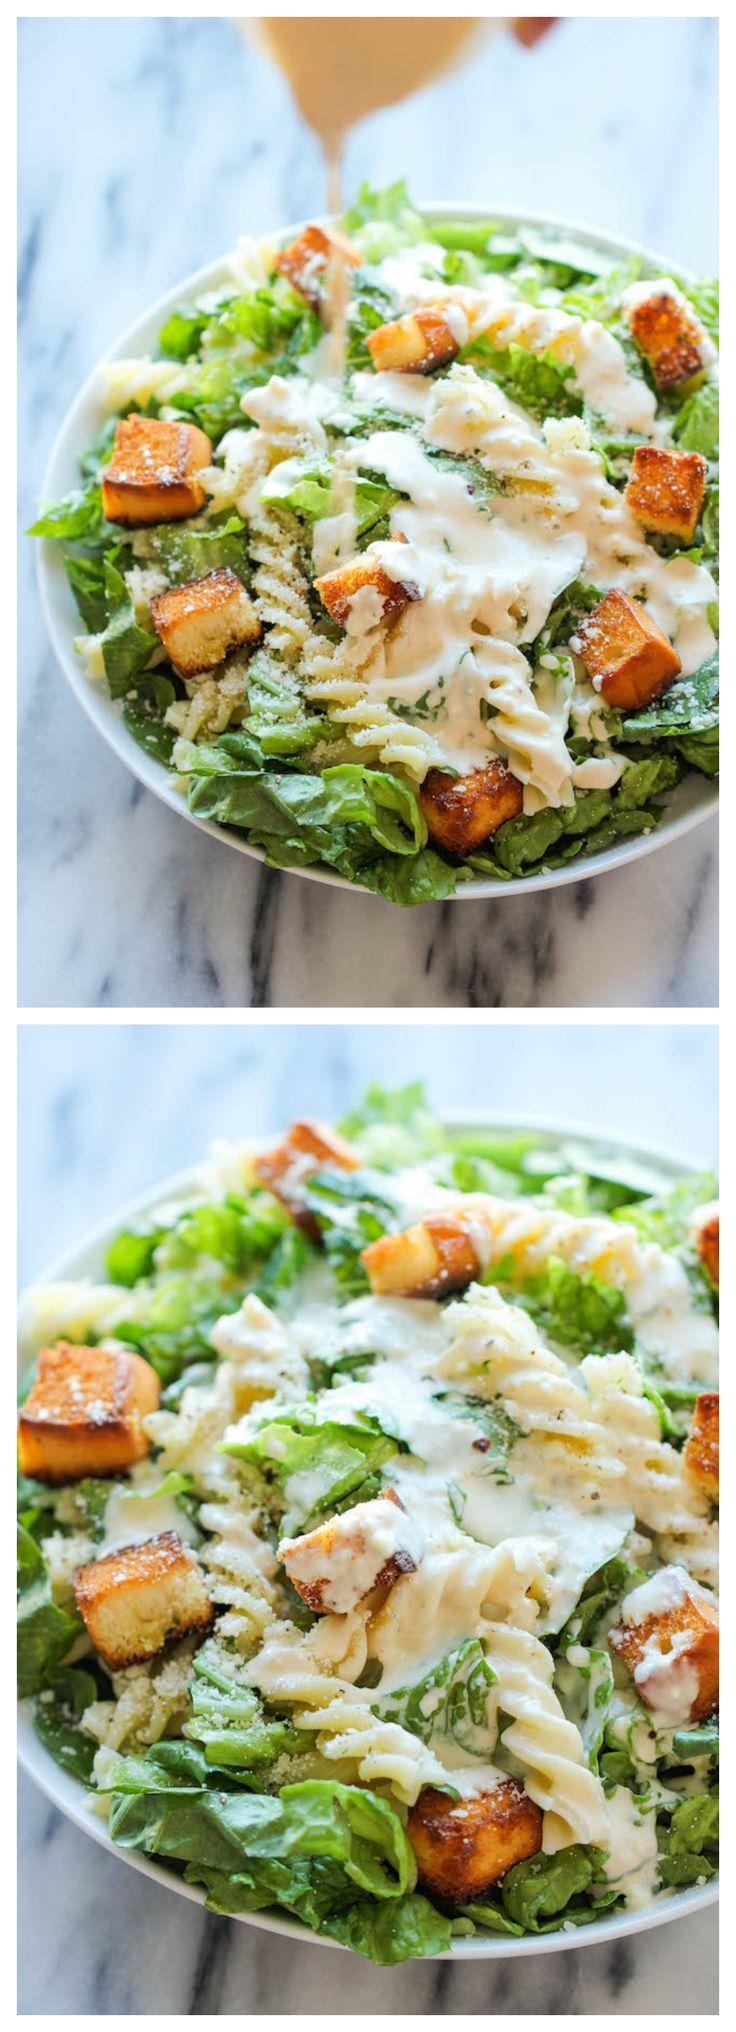 Fusilli Caesar Salad - The best caesar salad with sweet Hawaiian bread croutons. So good, you'll want to eat all of the croutons first!